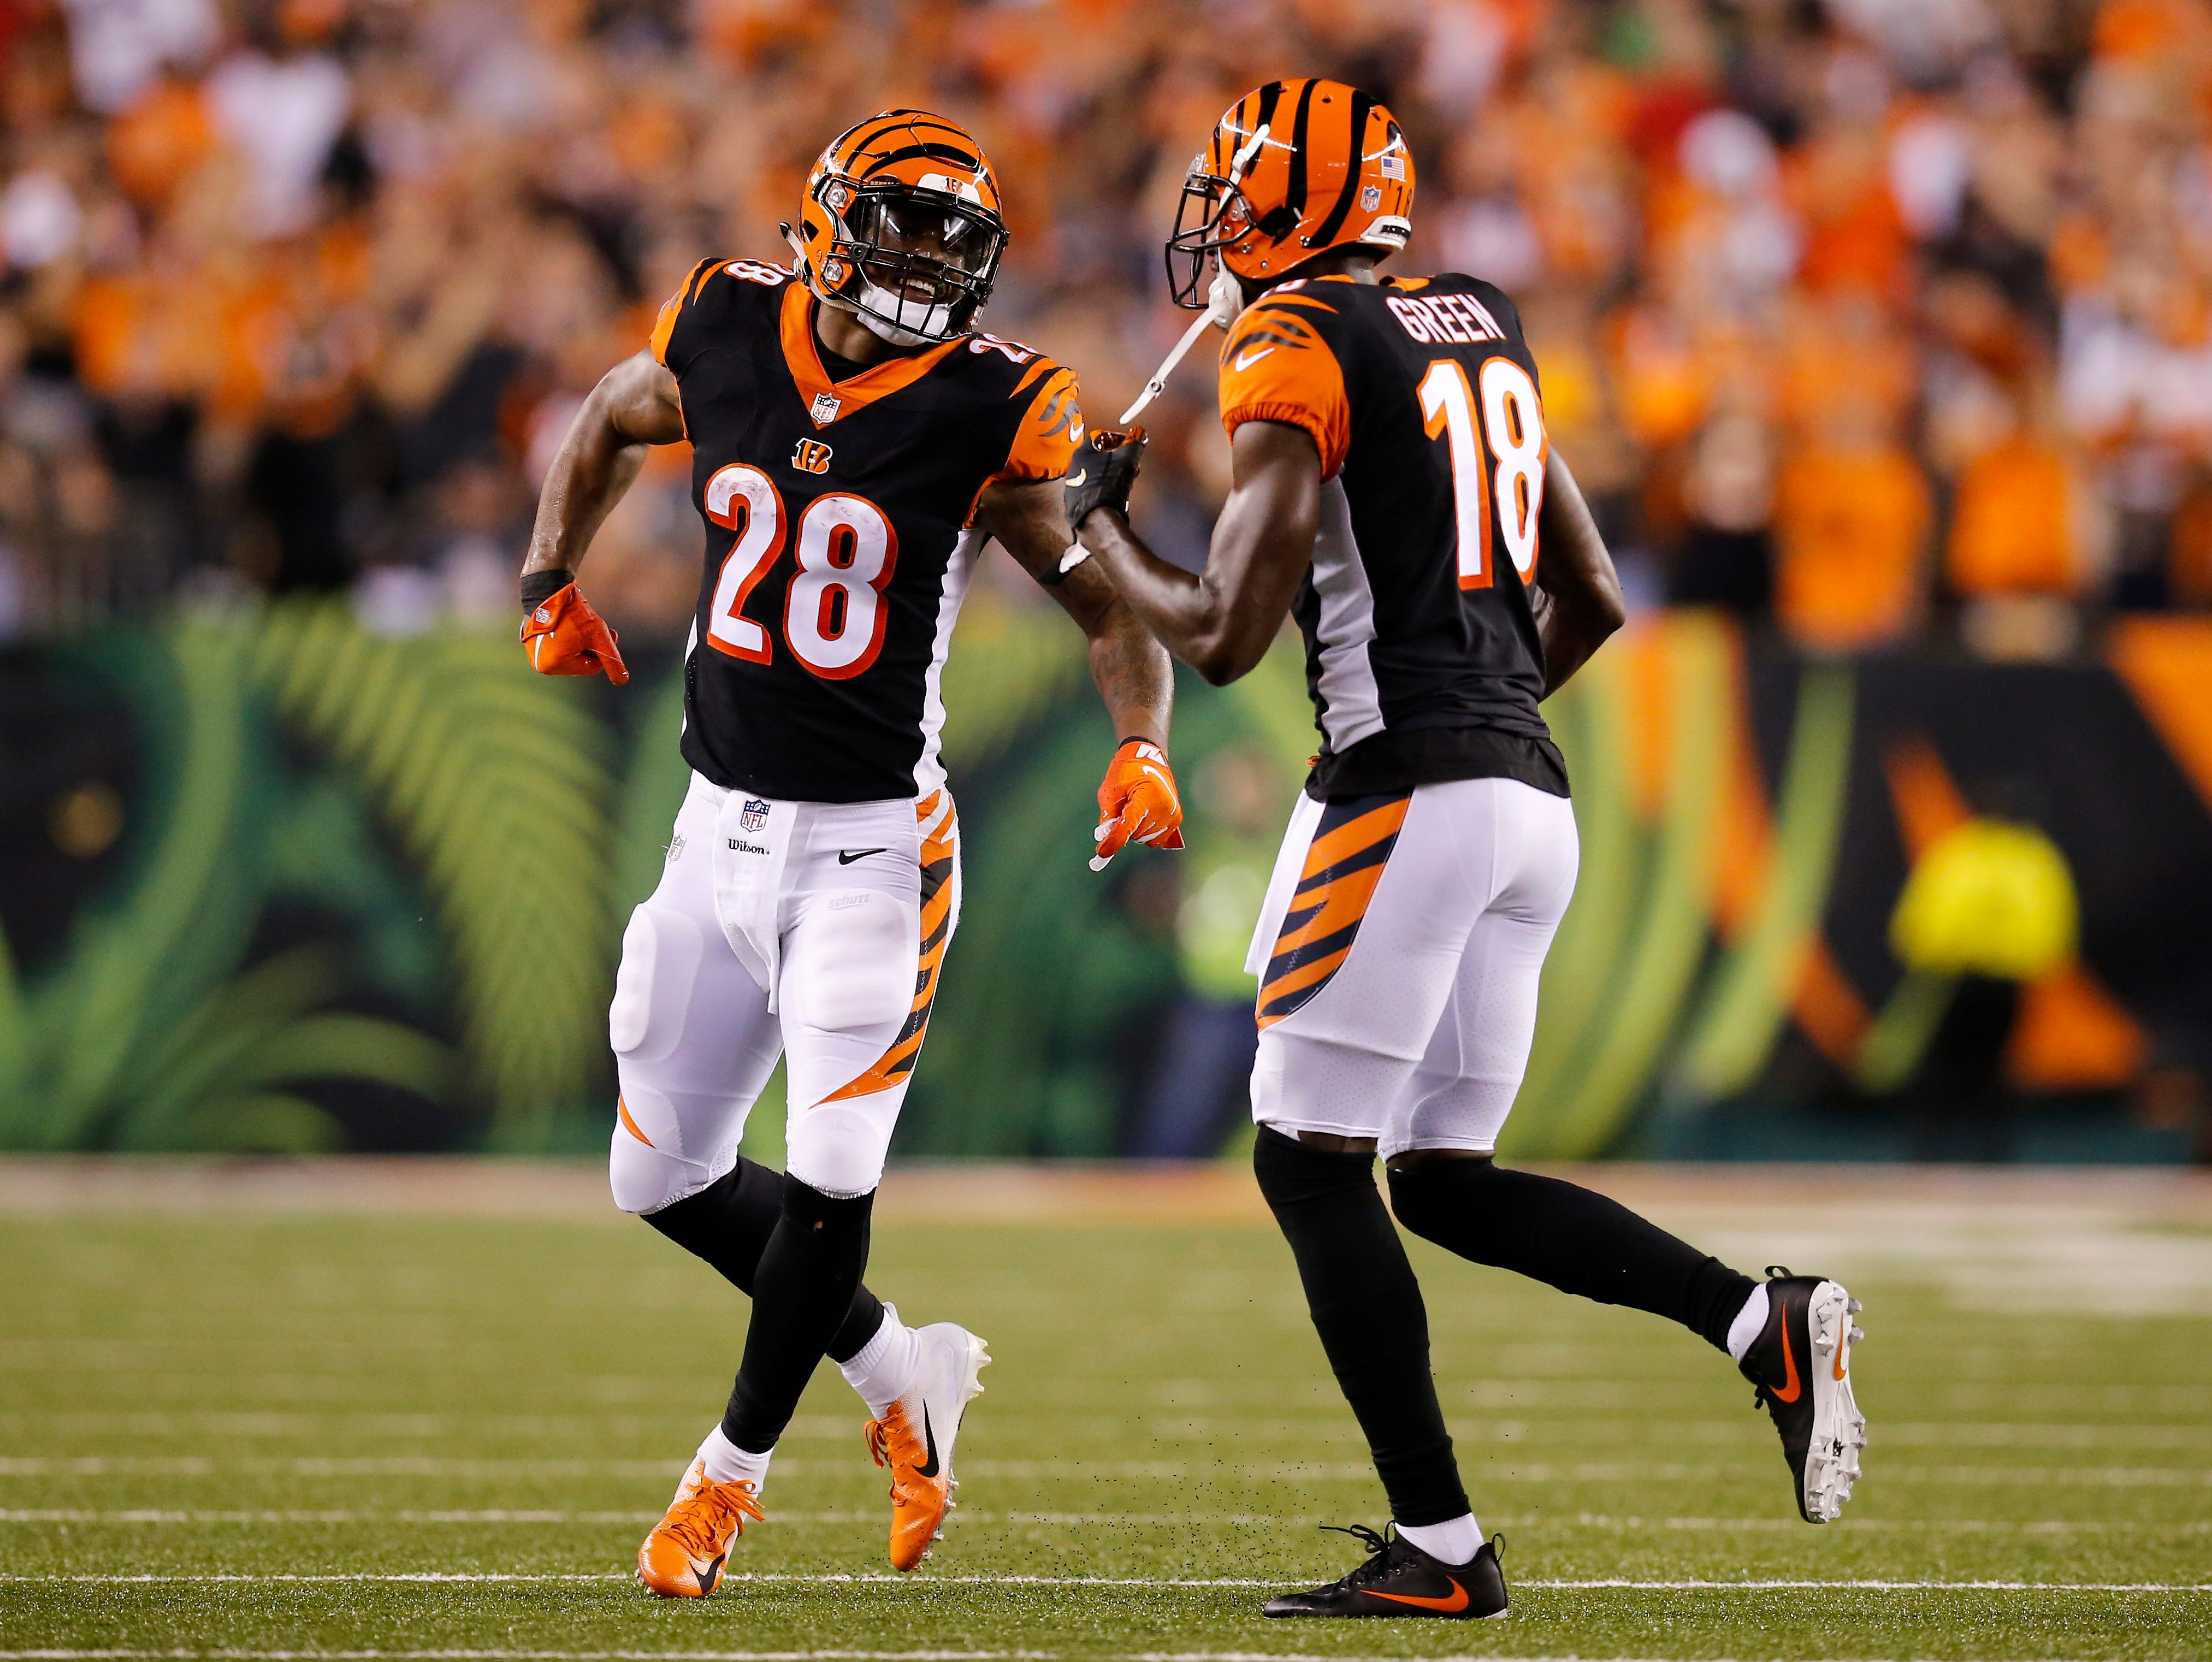 Cincinnati Bengals running back Joe Mixon (28) celebrates with wide receiver A.J. Green (18) after Green's third touchdown of the game in the second quarter of the NFL Week 2 game between the Cincinnati Bengals and the Baltimore Ravens at Paul Brown Stadium in downtown Cincinnati on Thursday, Sept. 13, 2018. The Bengals led 28-14 at halftime.